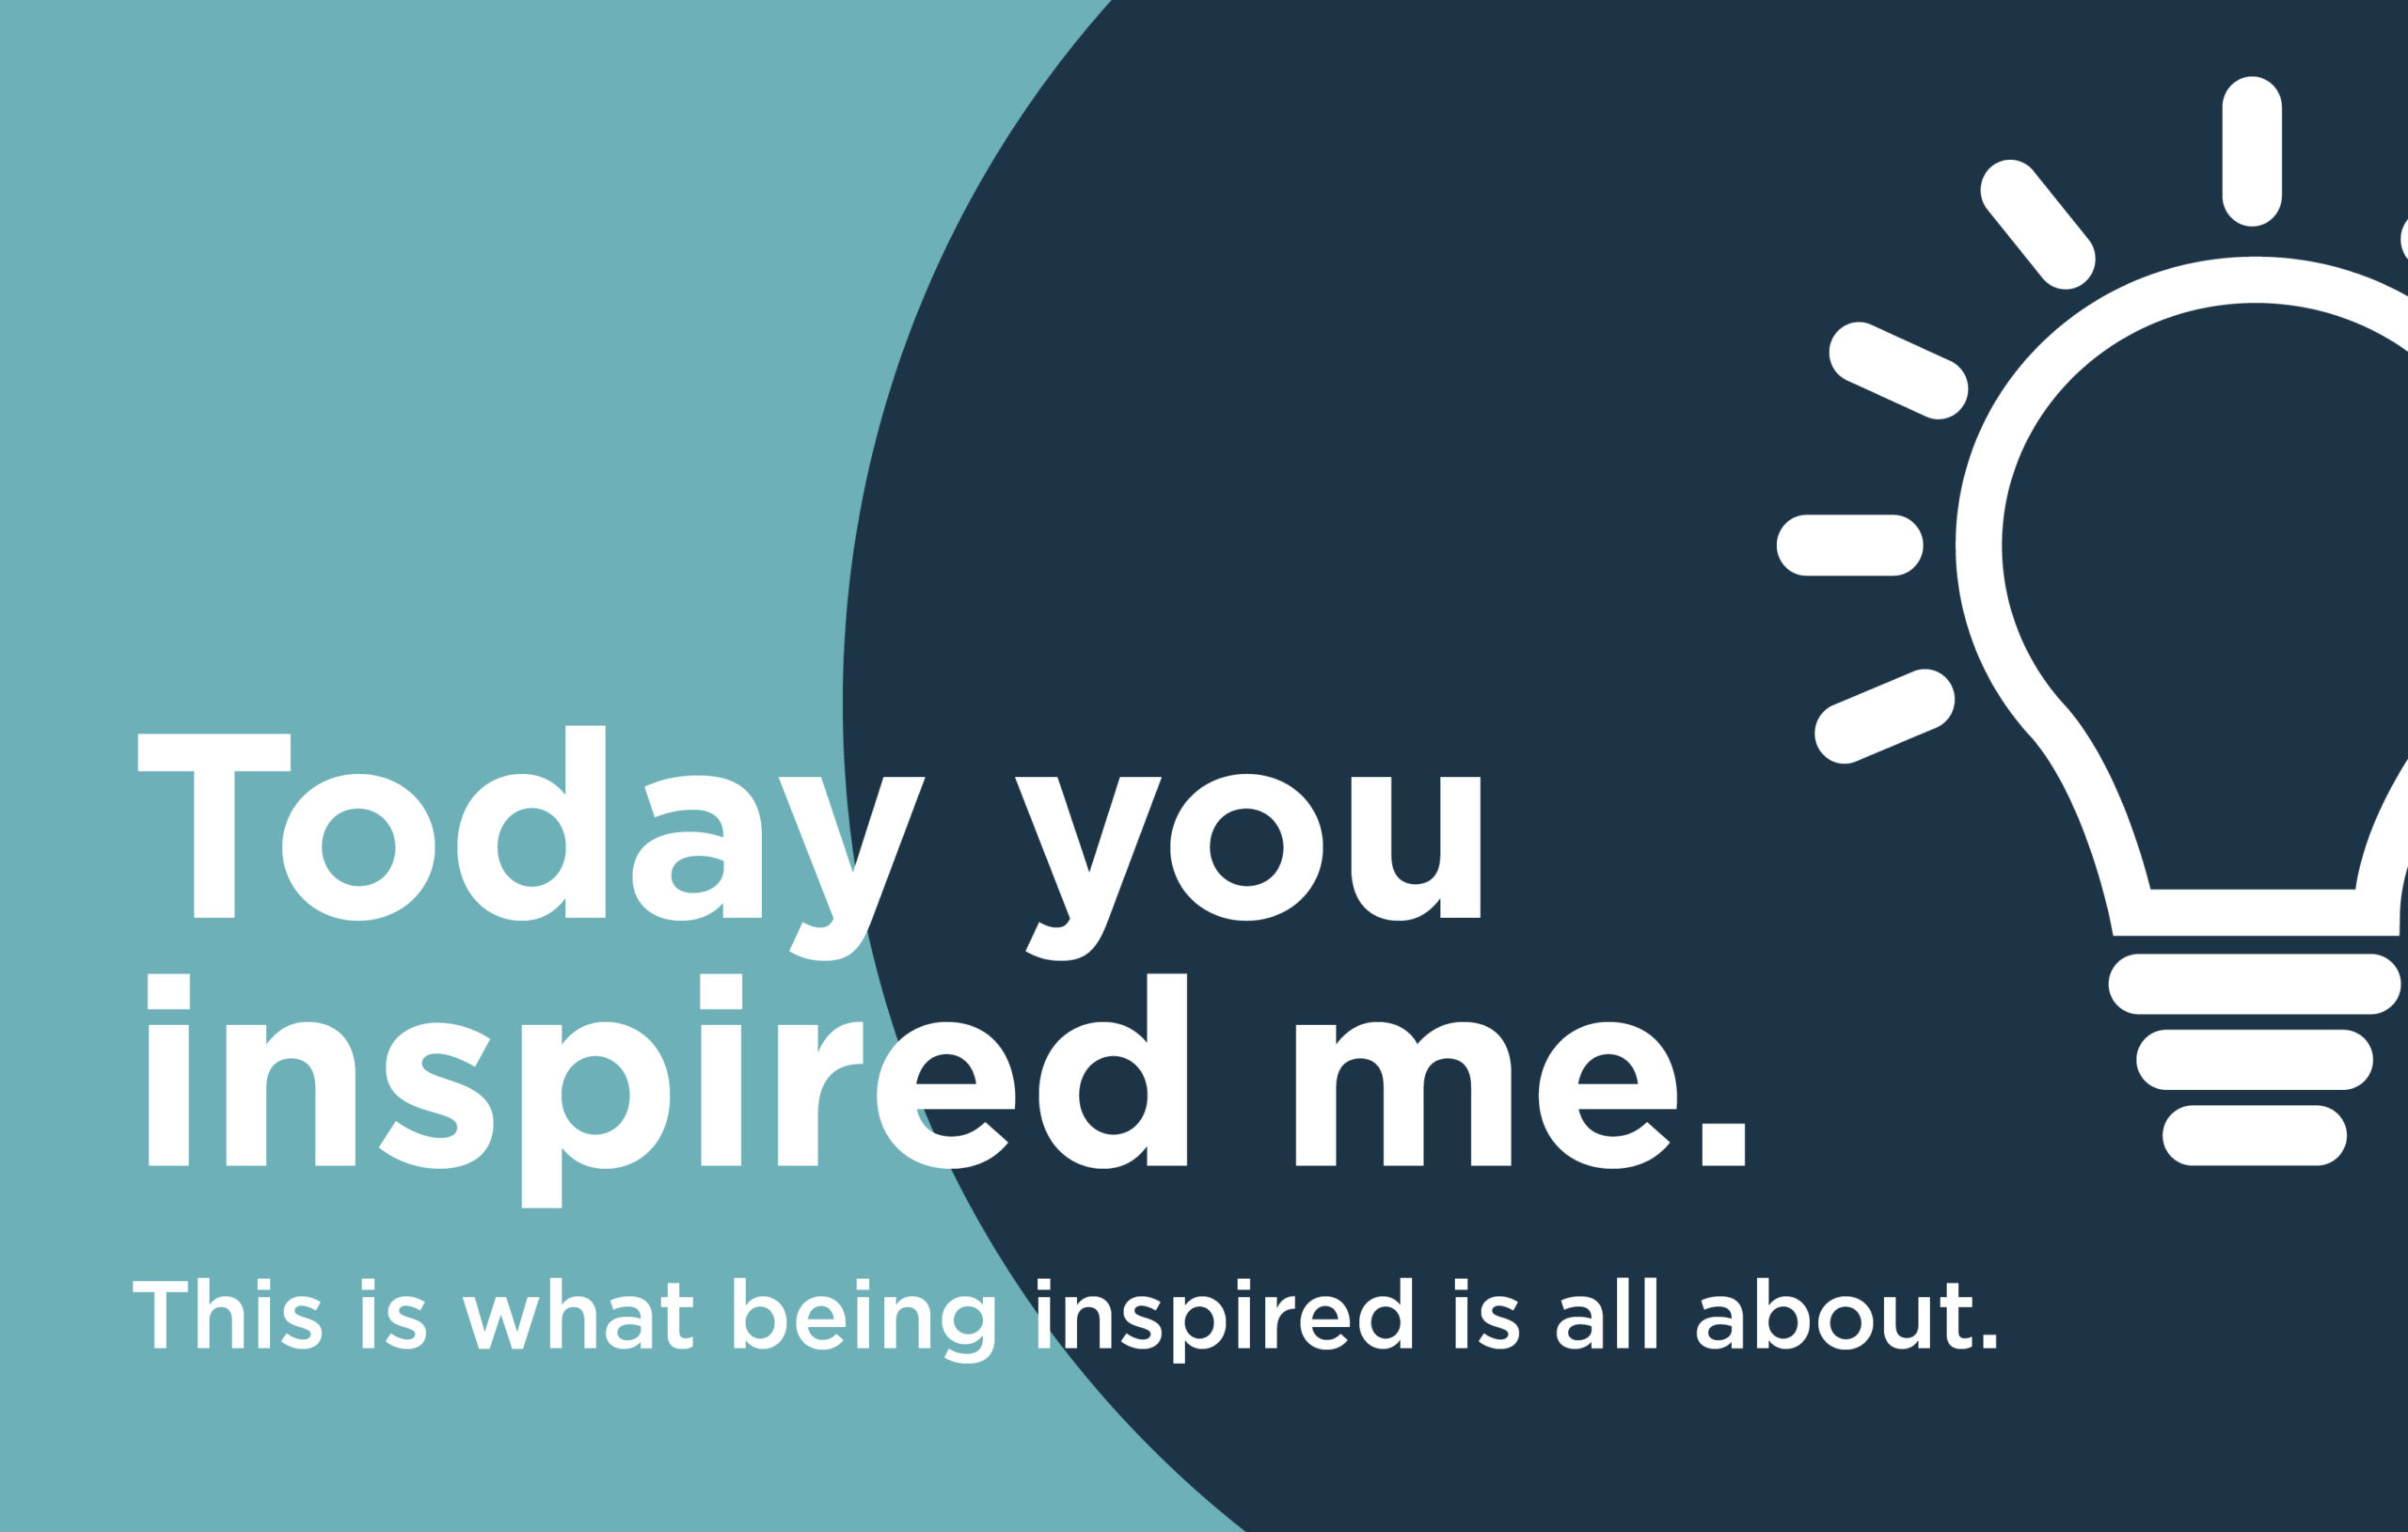 Image of e-card with copy 'Today you inspired me'